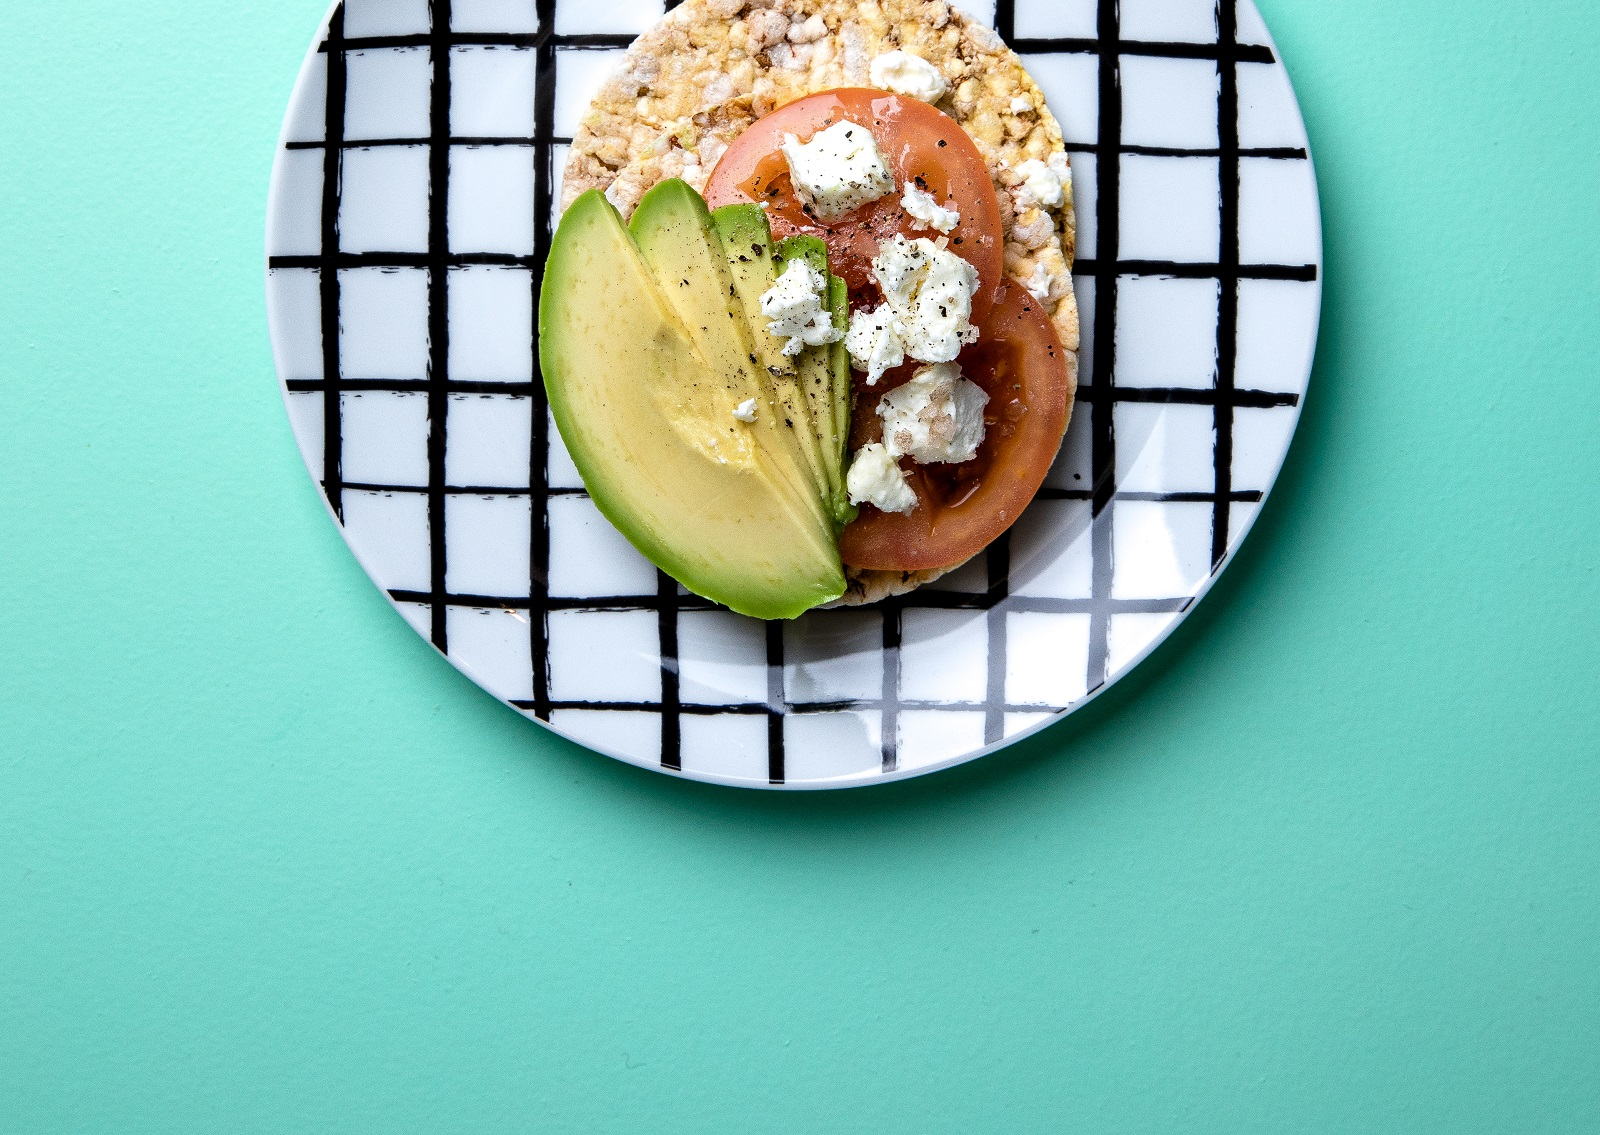 Tomato, Avocado & Feta on CORN THINS slices for lunch